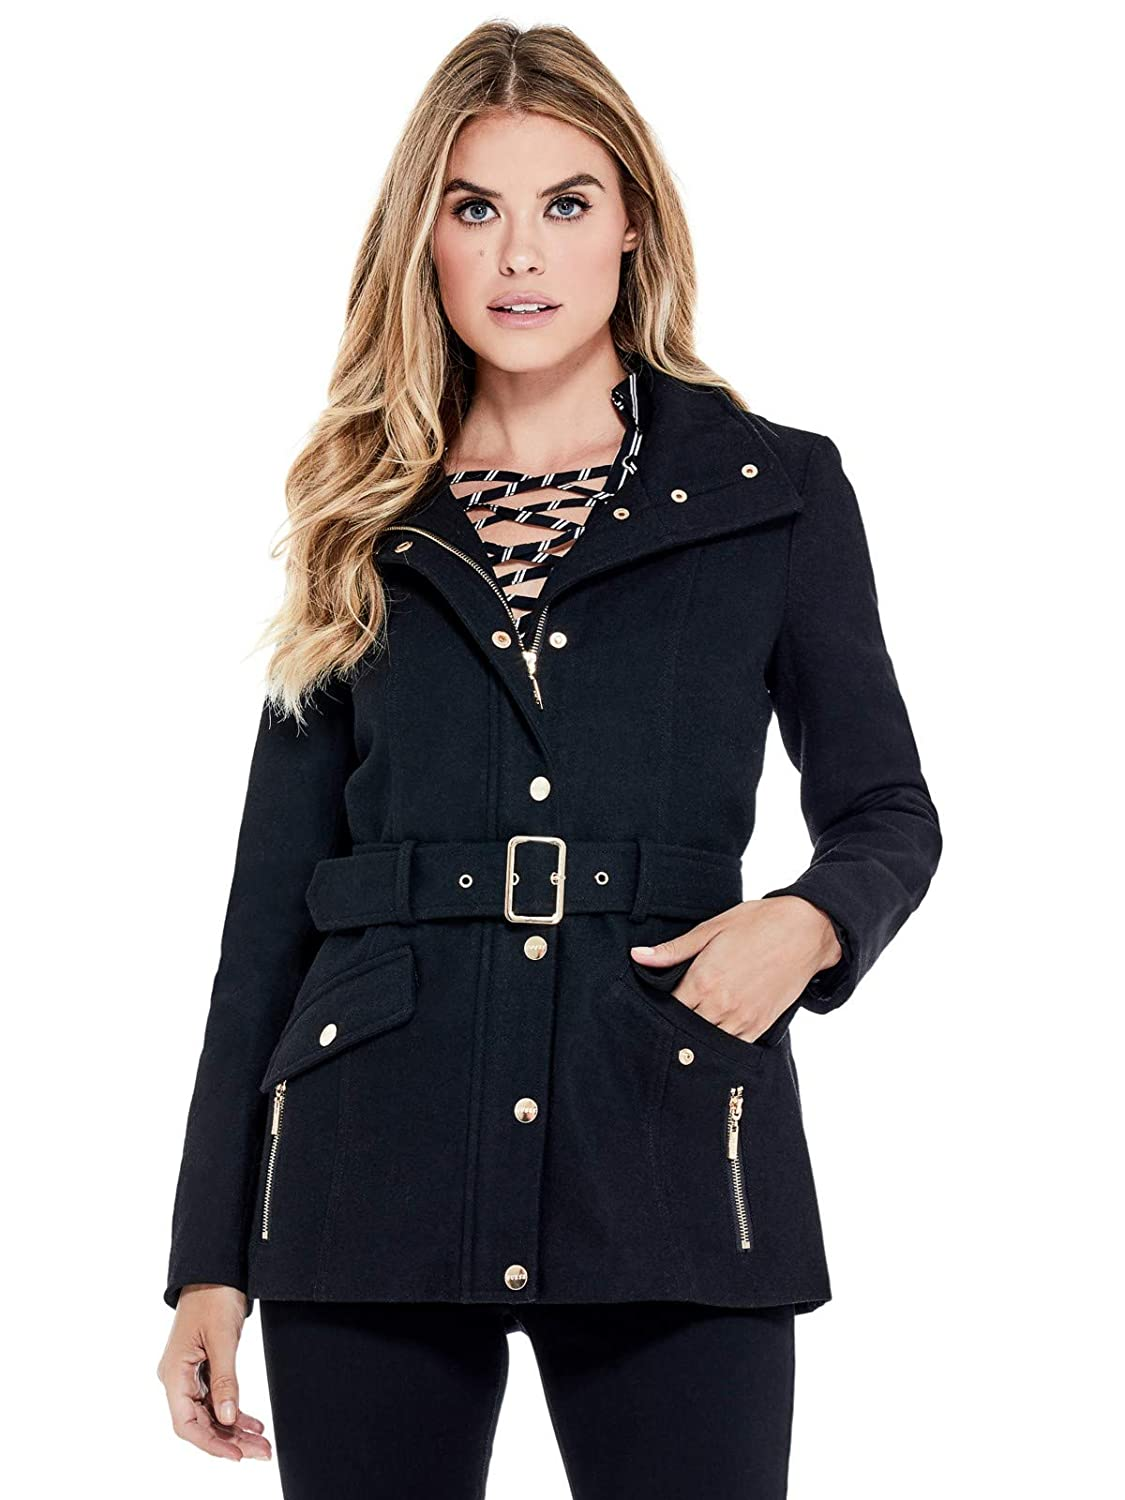 Guess Factory Women's Karlee Belted Peacoat GuessFactory